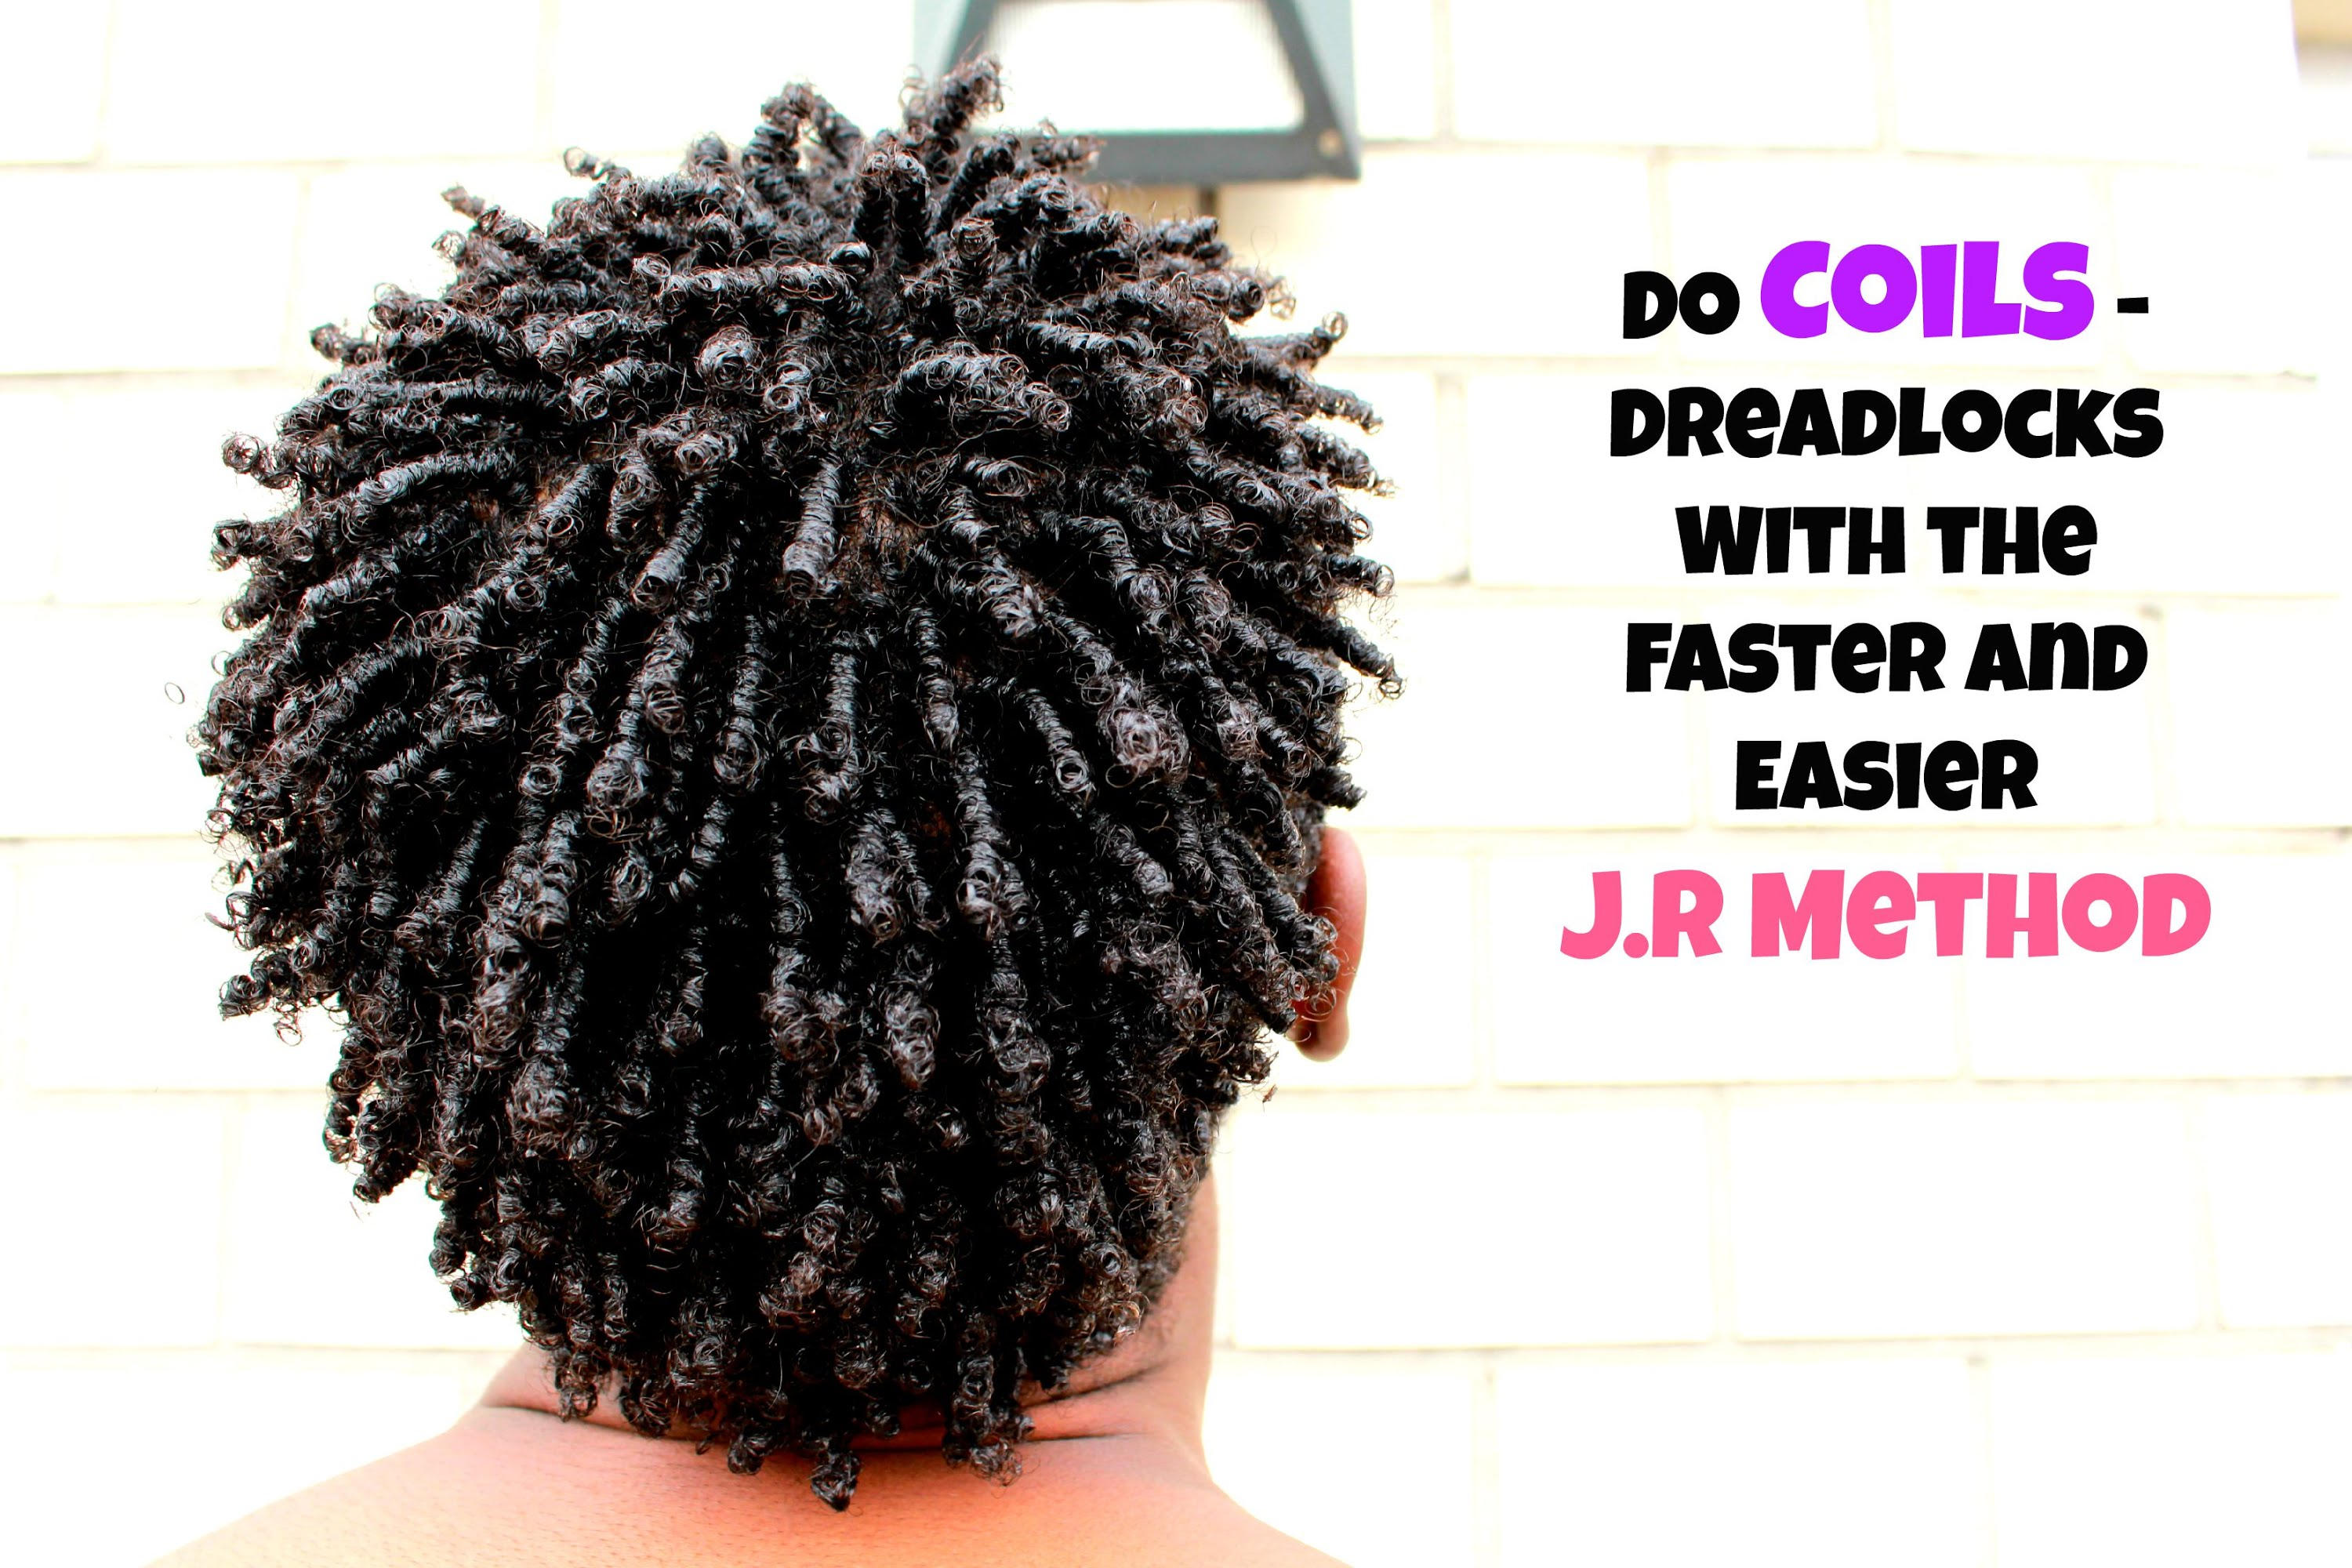 men hair: how to coils / dreadlock with the j.r method